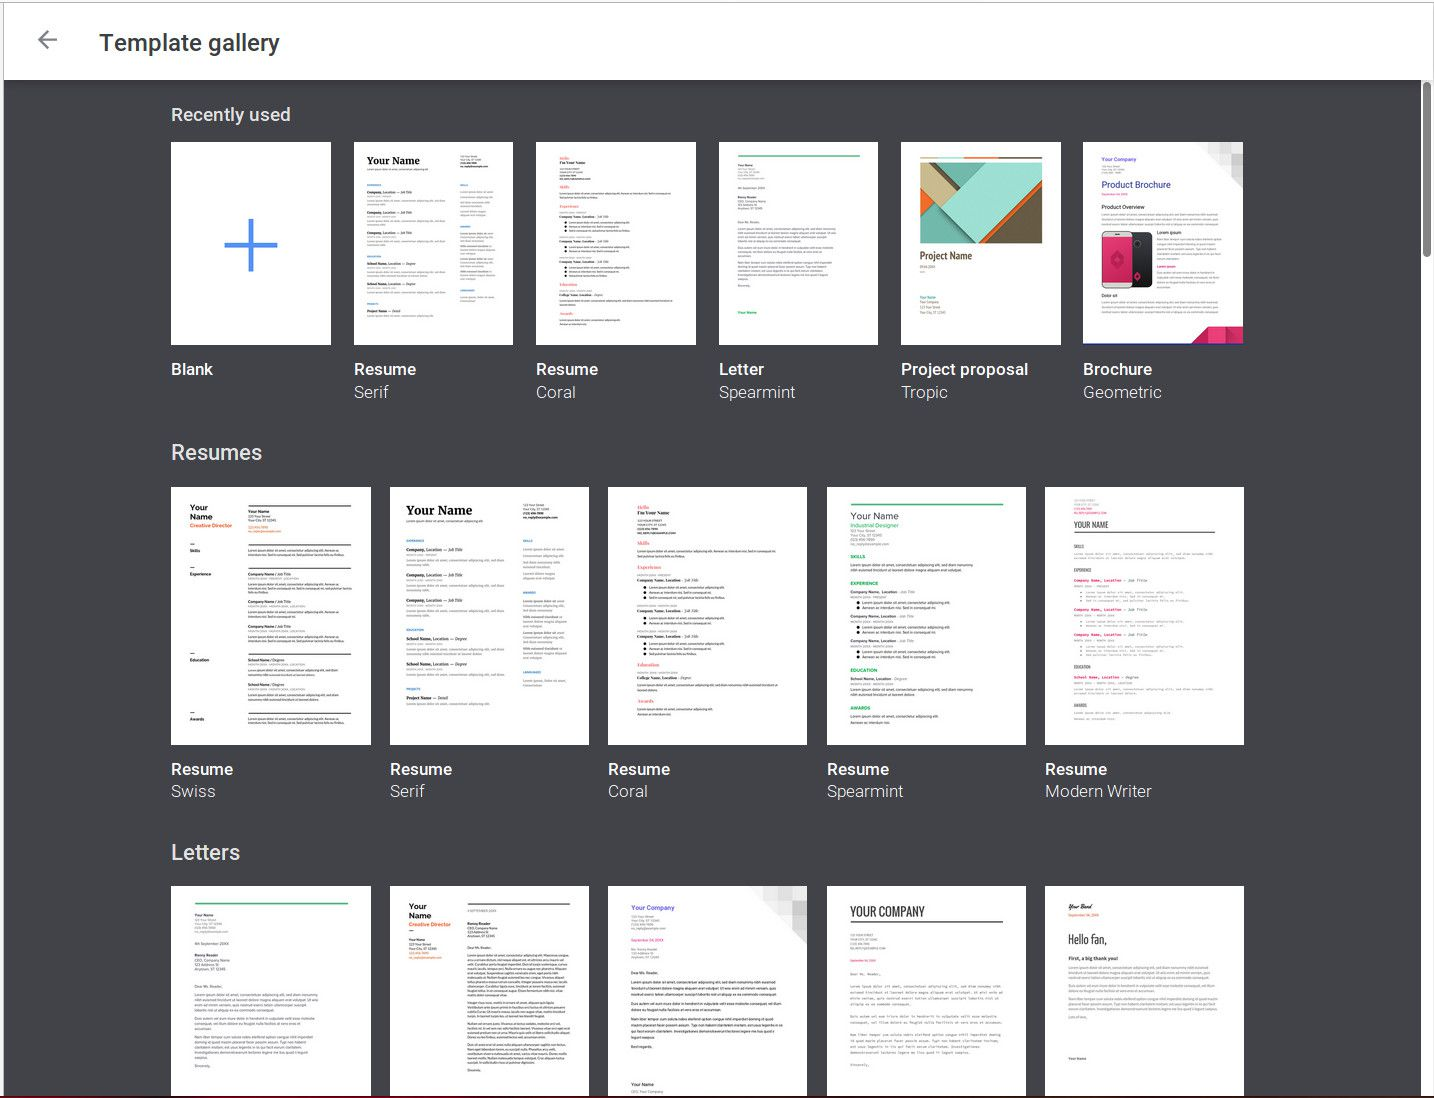 Google Docs Template | How To Create A Free Google Docs Template